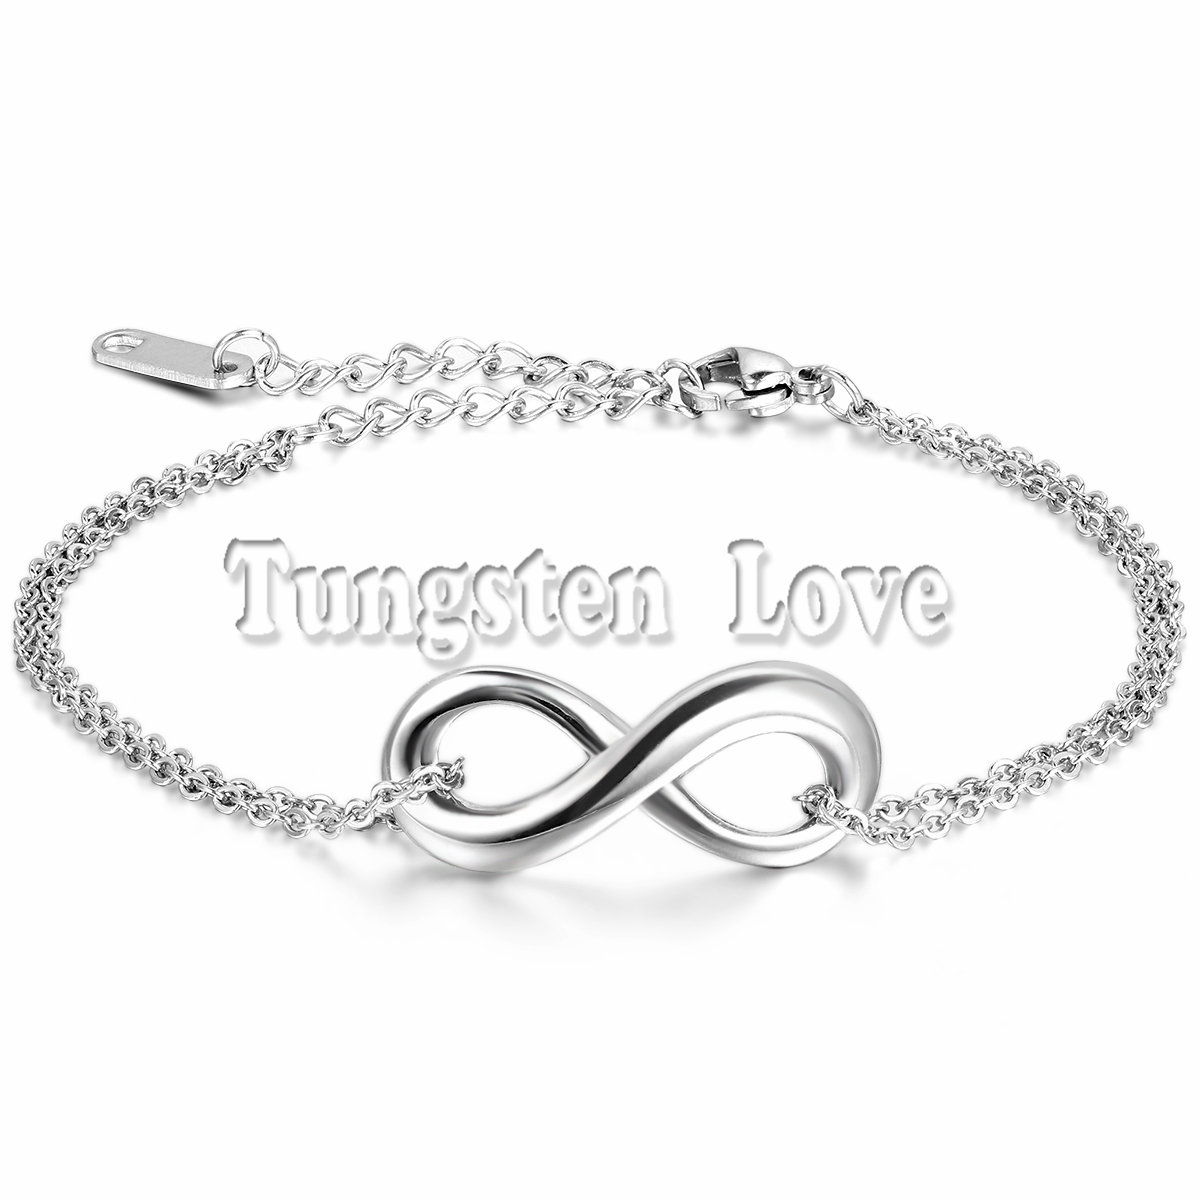 Fashion Silver Stainless Steel Infinity Bracelet Women Charm Bracelets 7.3 Inch Length with Extend the chain(China (Mainland))